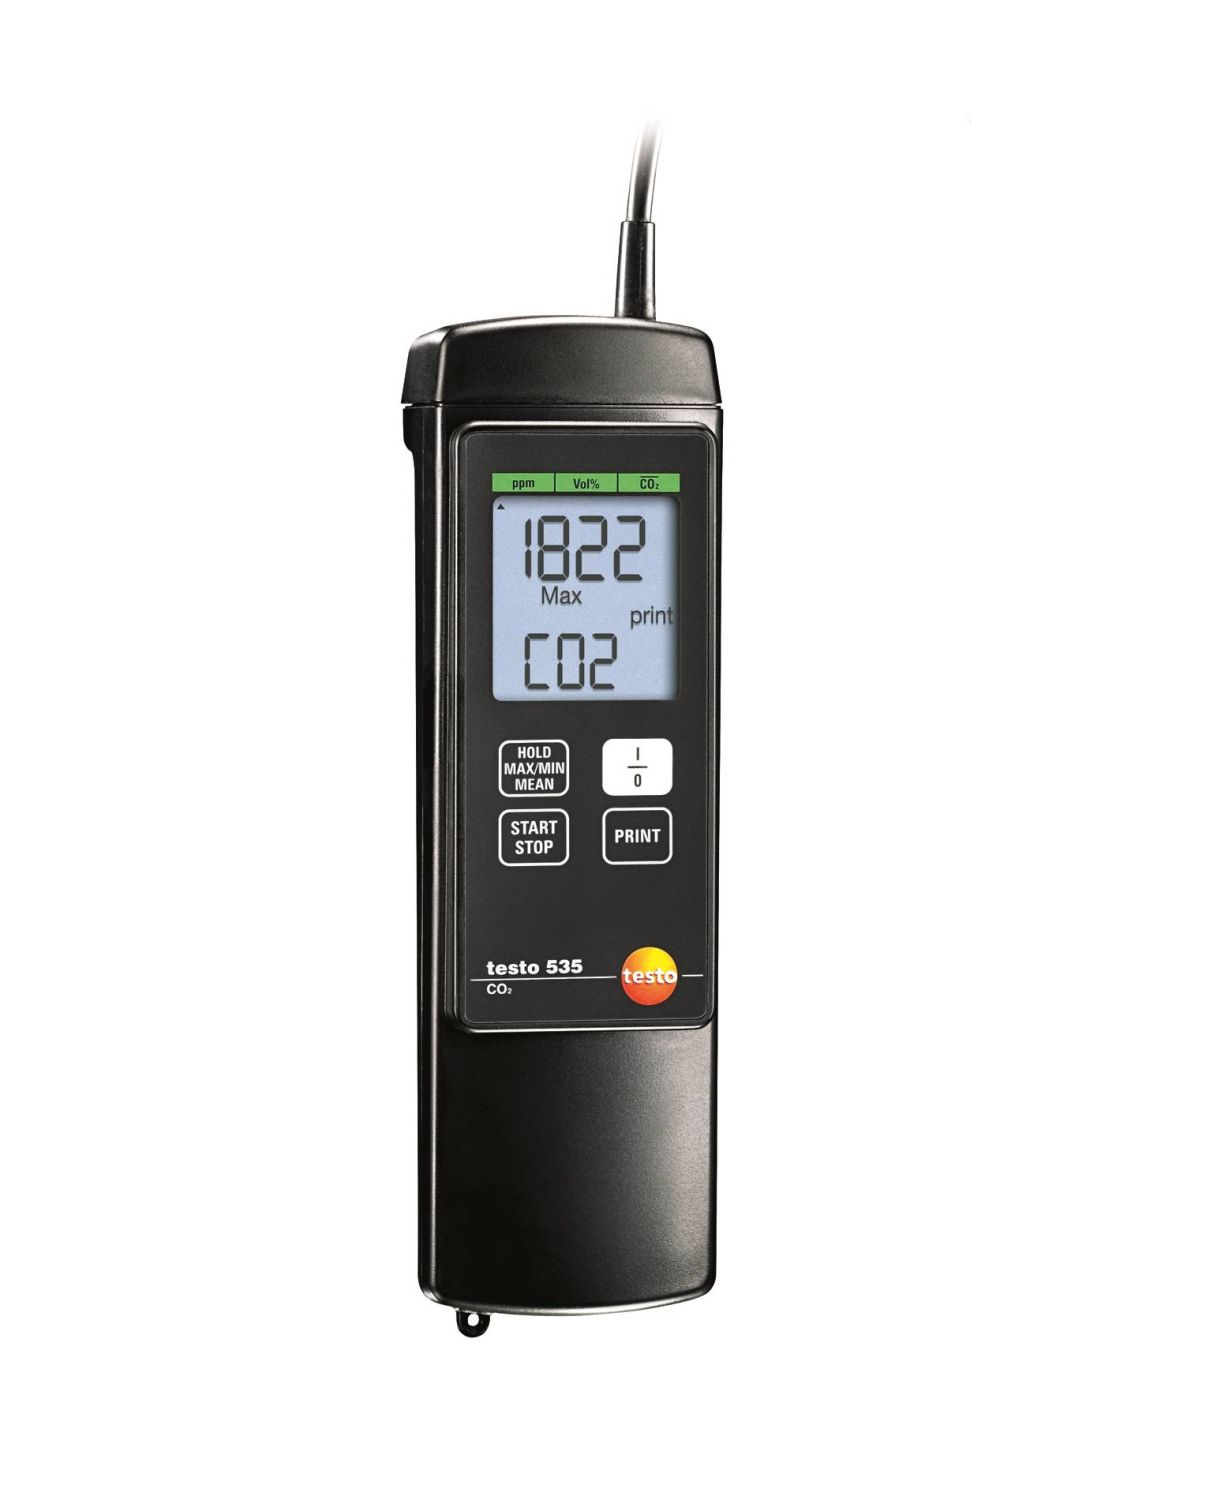 testo 535 - CO2 meter for CO2 measurement in ambient air